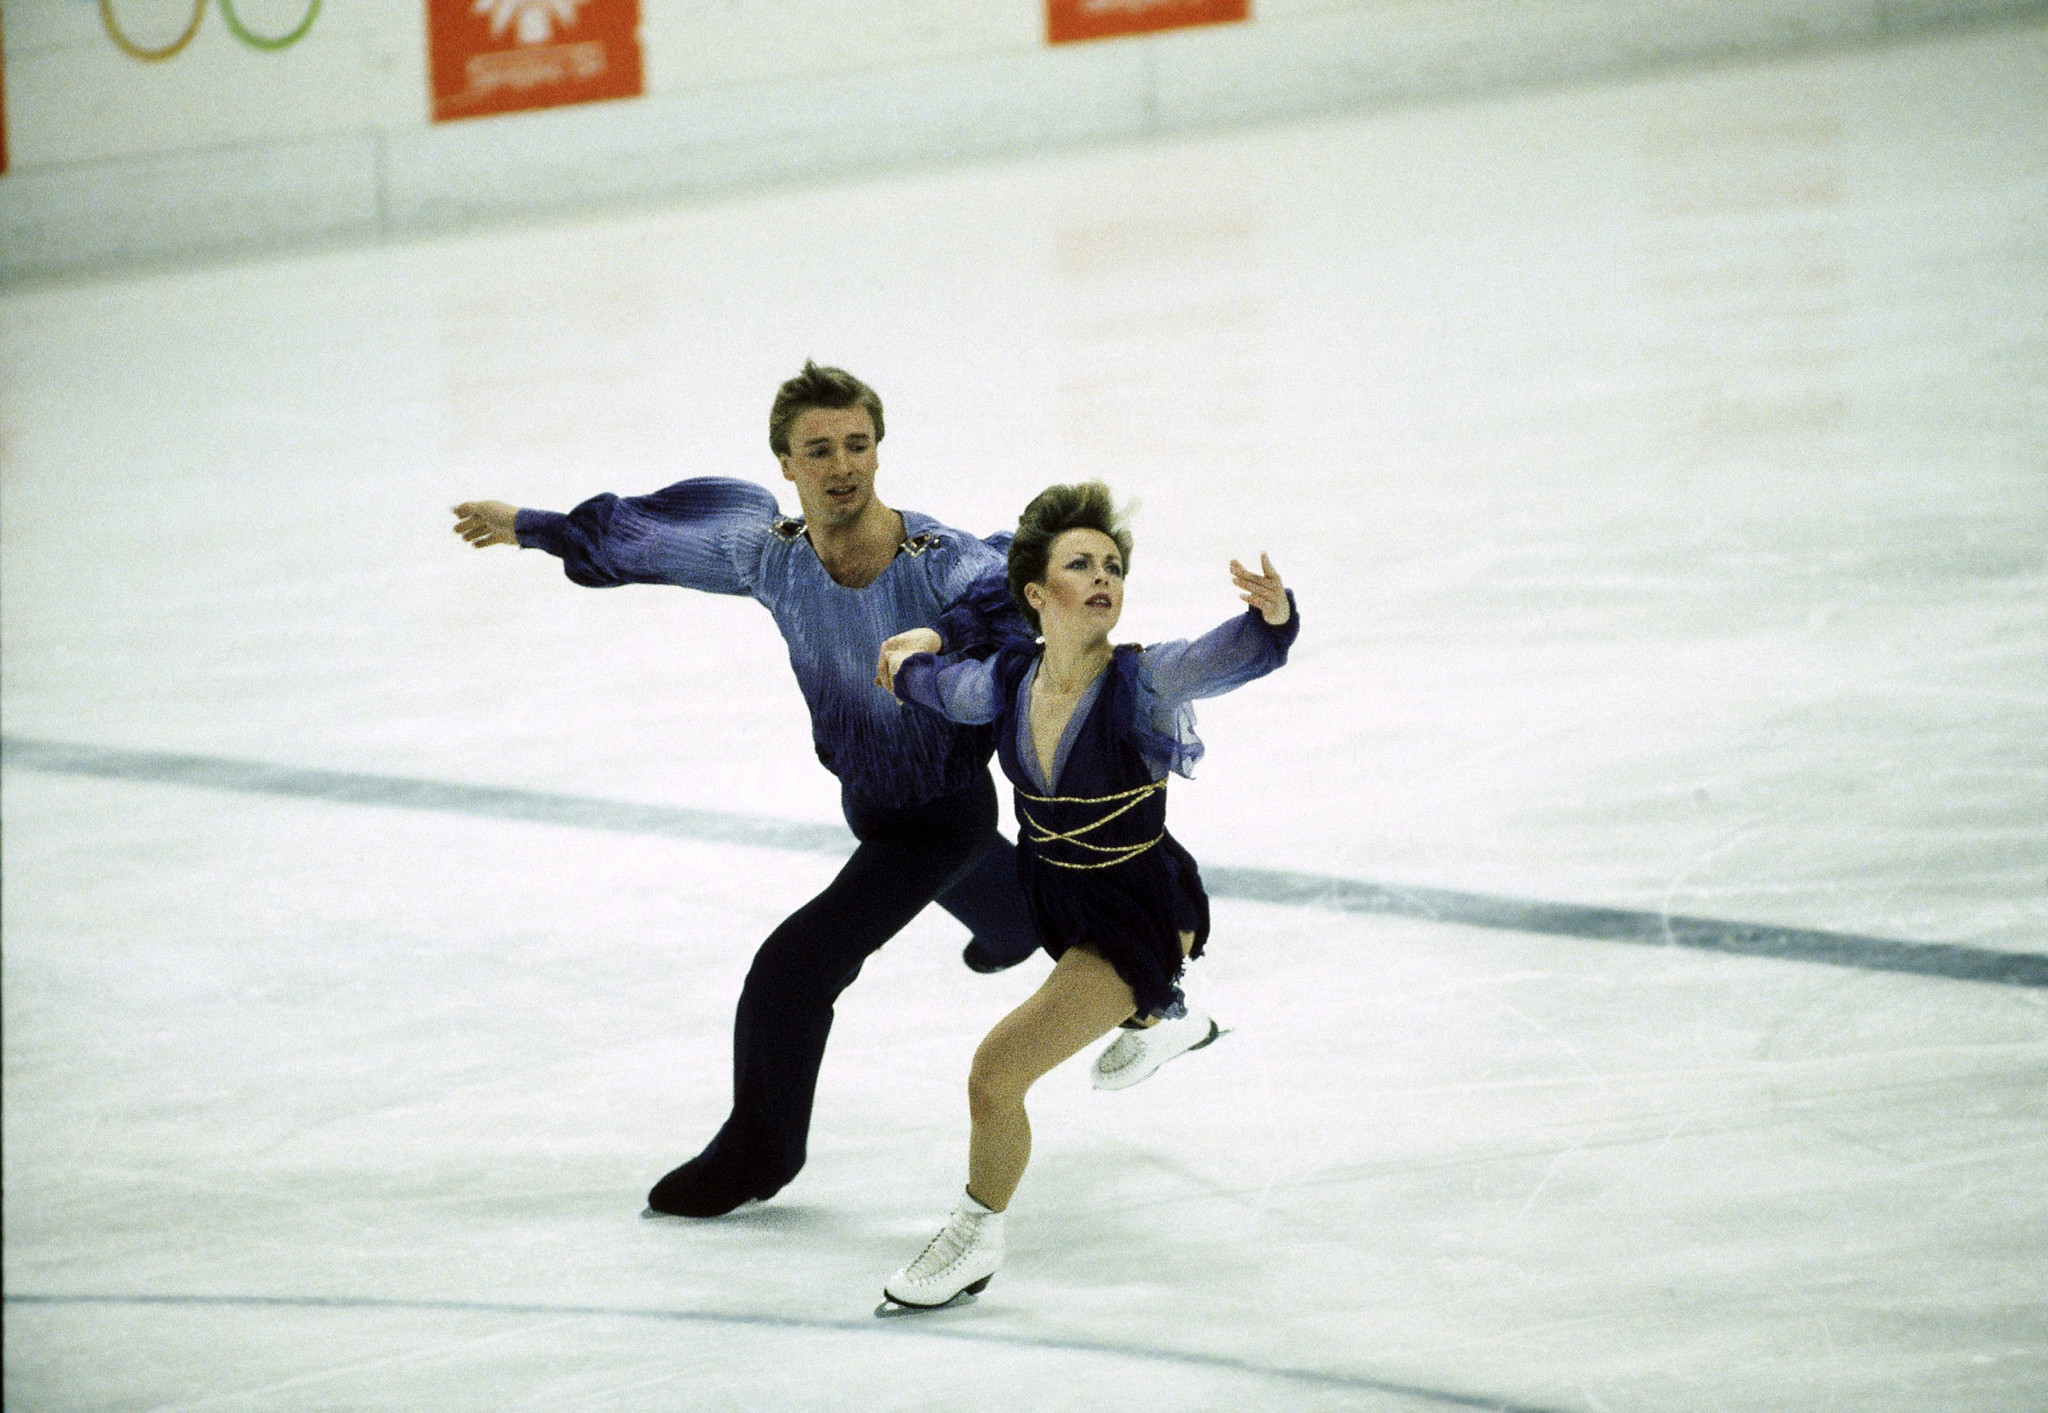 Jayne Torvill and Christopher Dean won Olympic gold at Sarajevo 1984 ©Getty Images